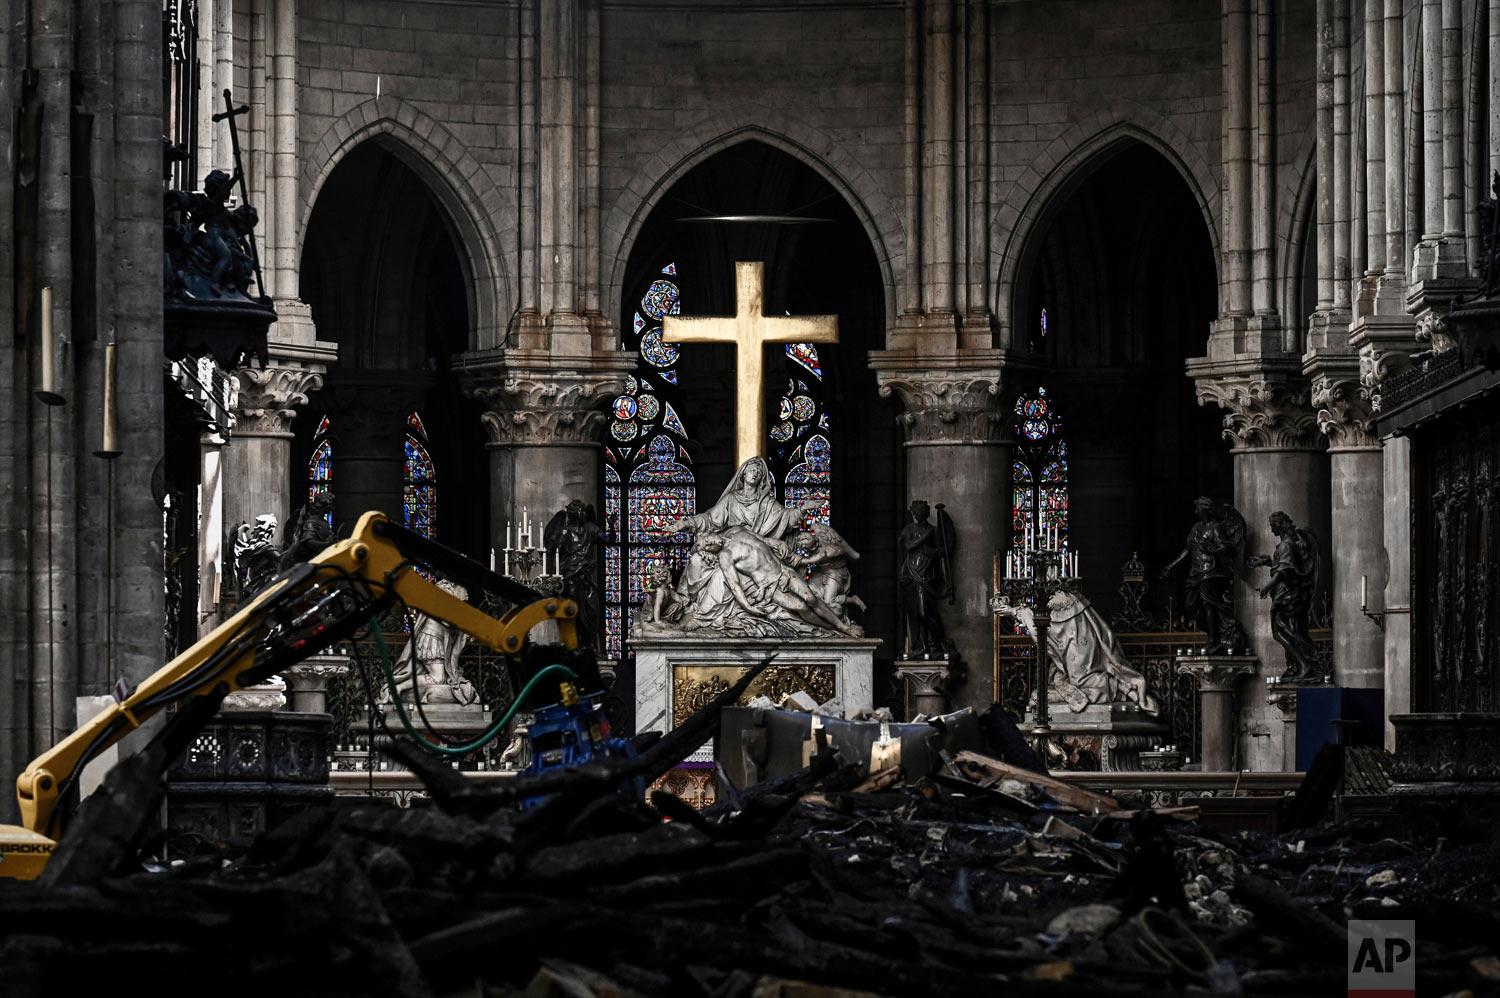 Rubble lies below the Pieta sculpture and a cross inside the Notre Dame de Paris cathedral on Wednesday May 15, 2019 in Paris. (Philippe Lopez/Pool via AP)